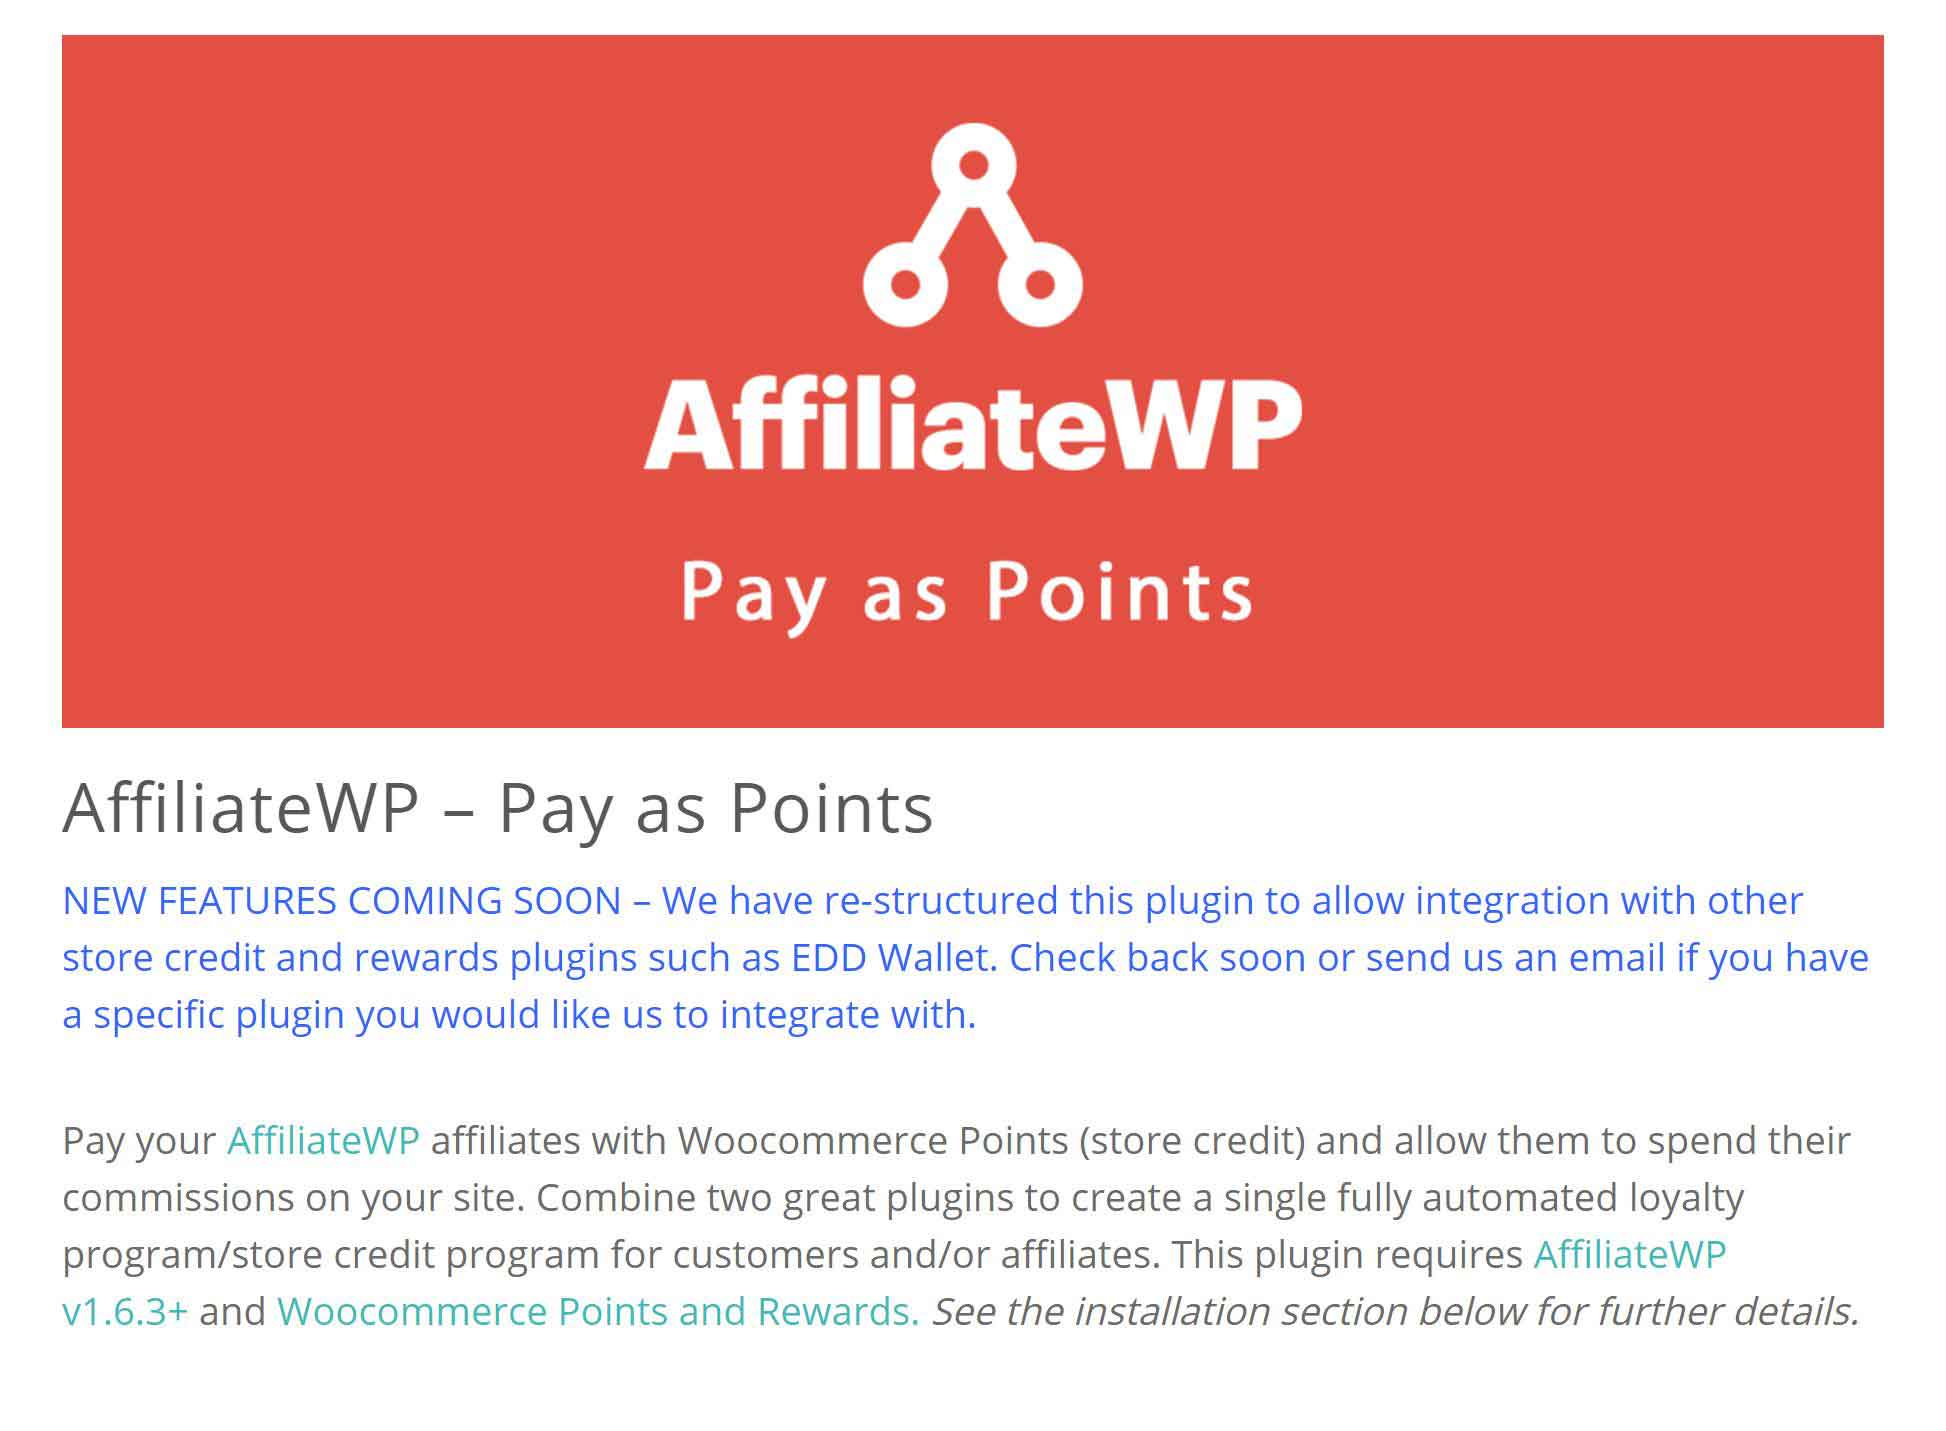 AffiliateWP – Pay as Points